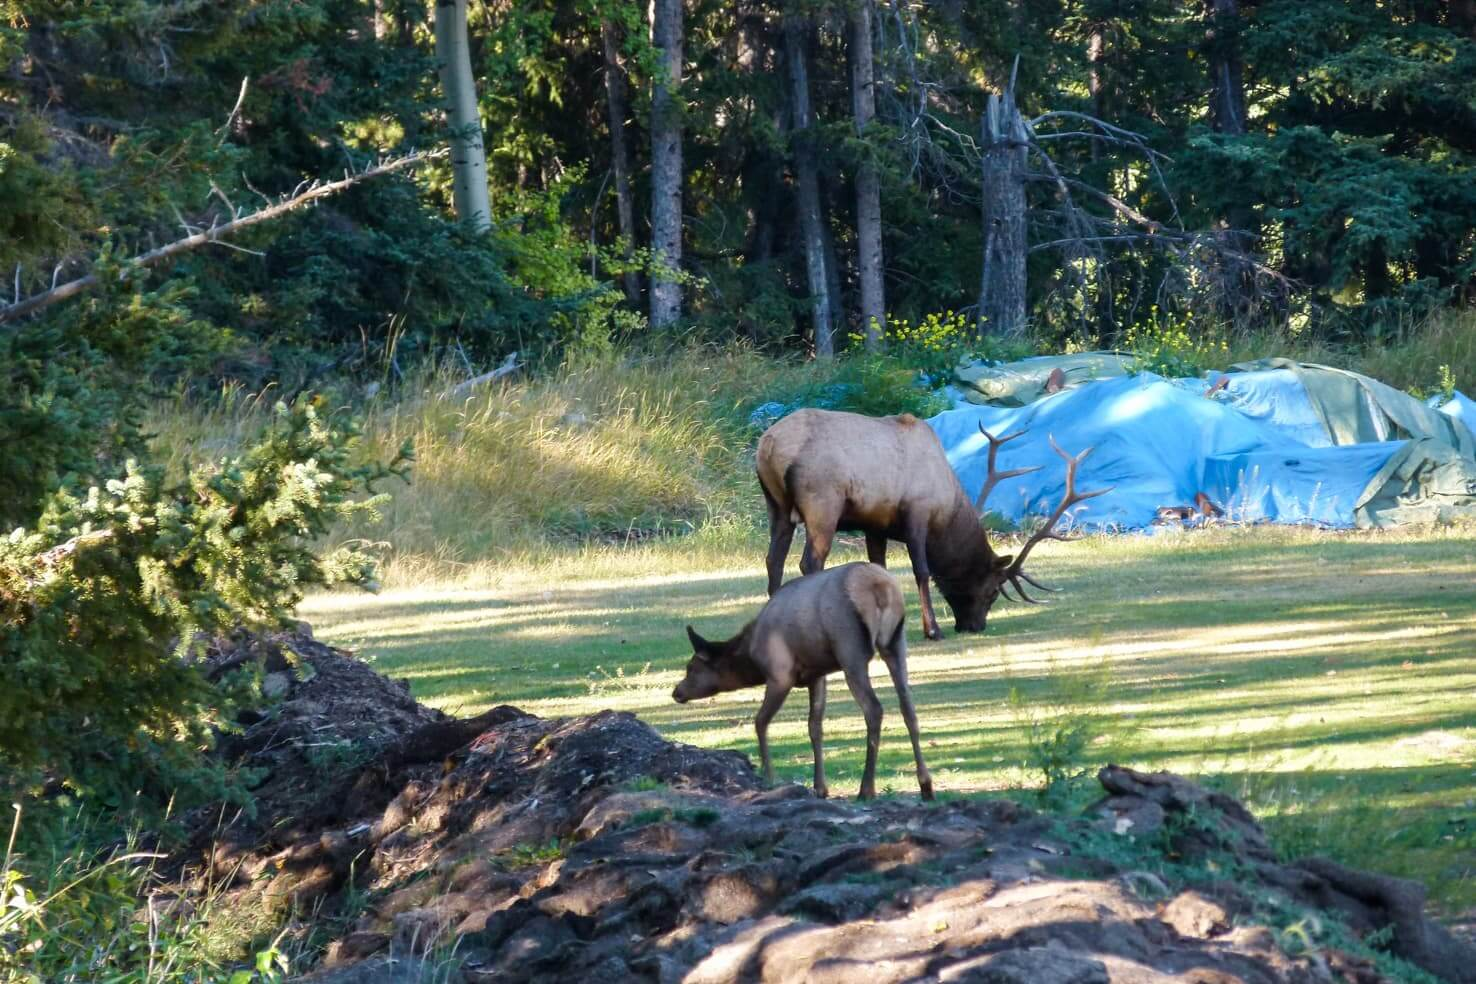 100 best things to do in Banff National Park, Canada - Play golf with elk